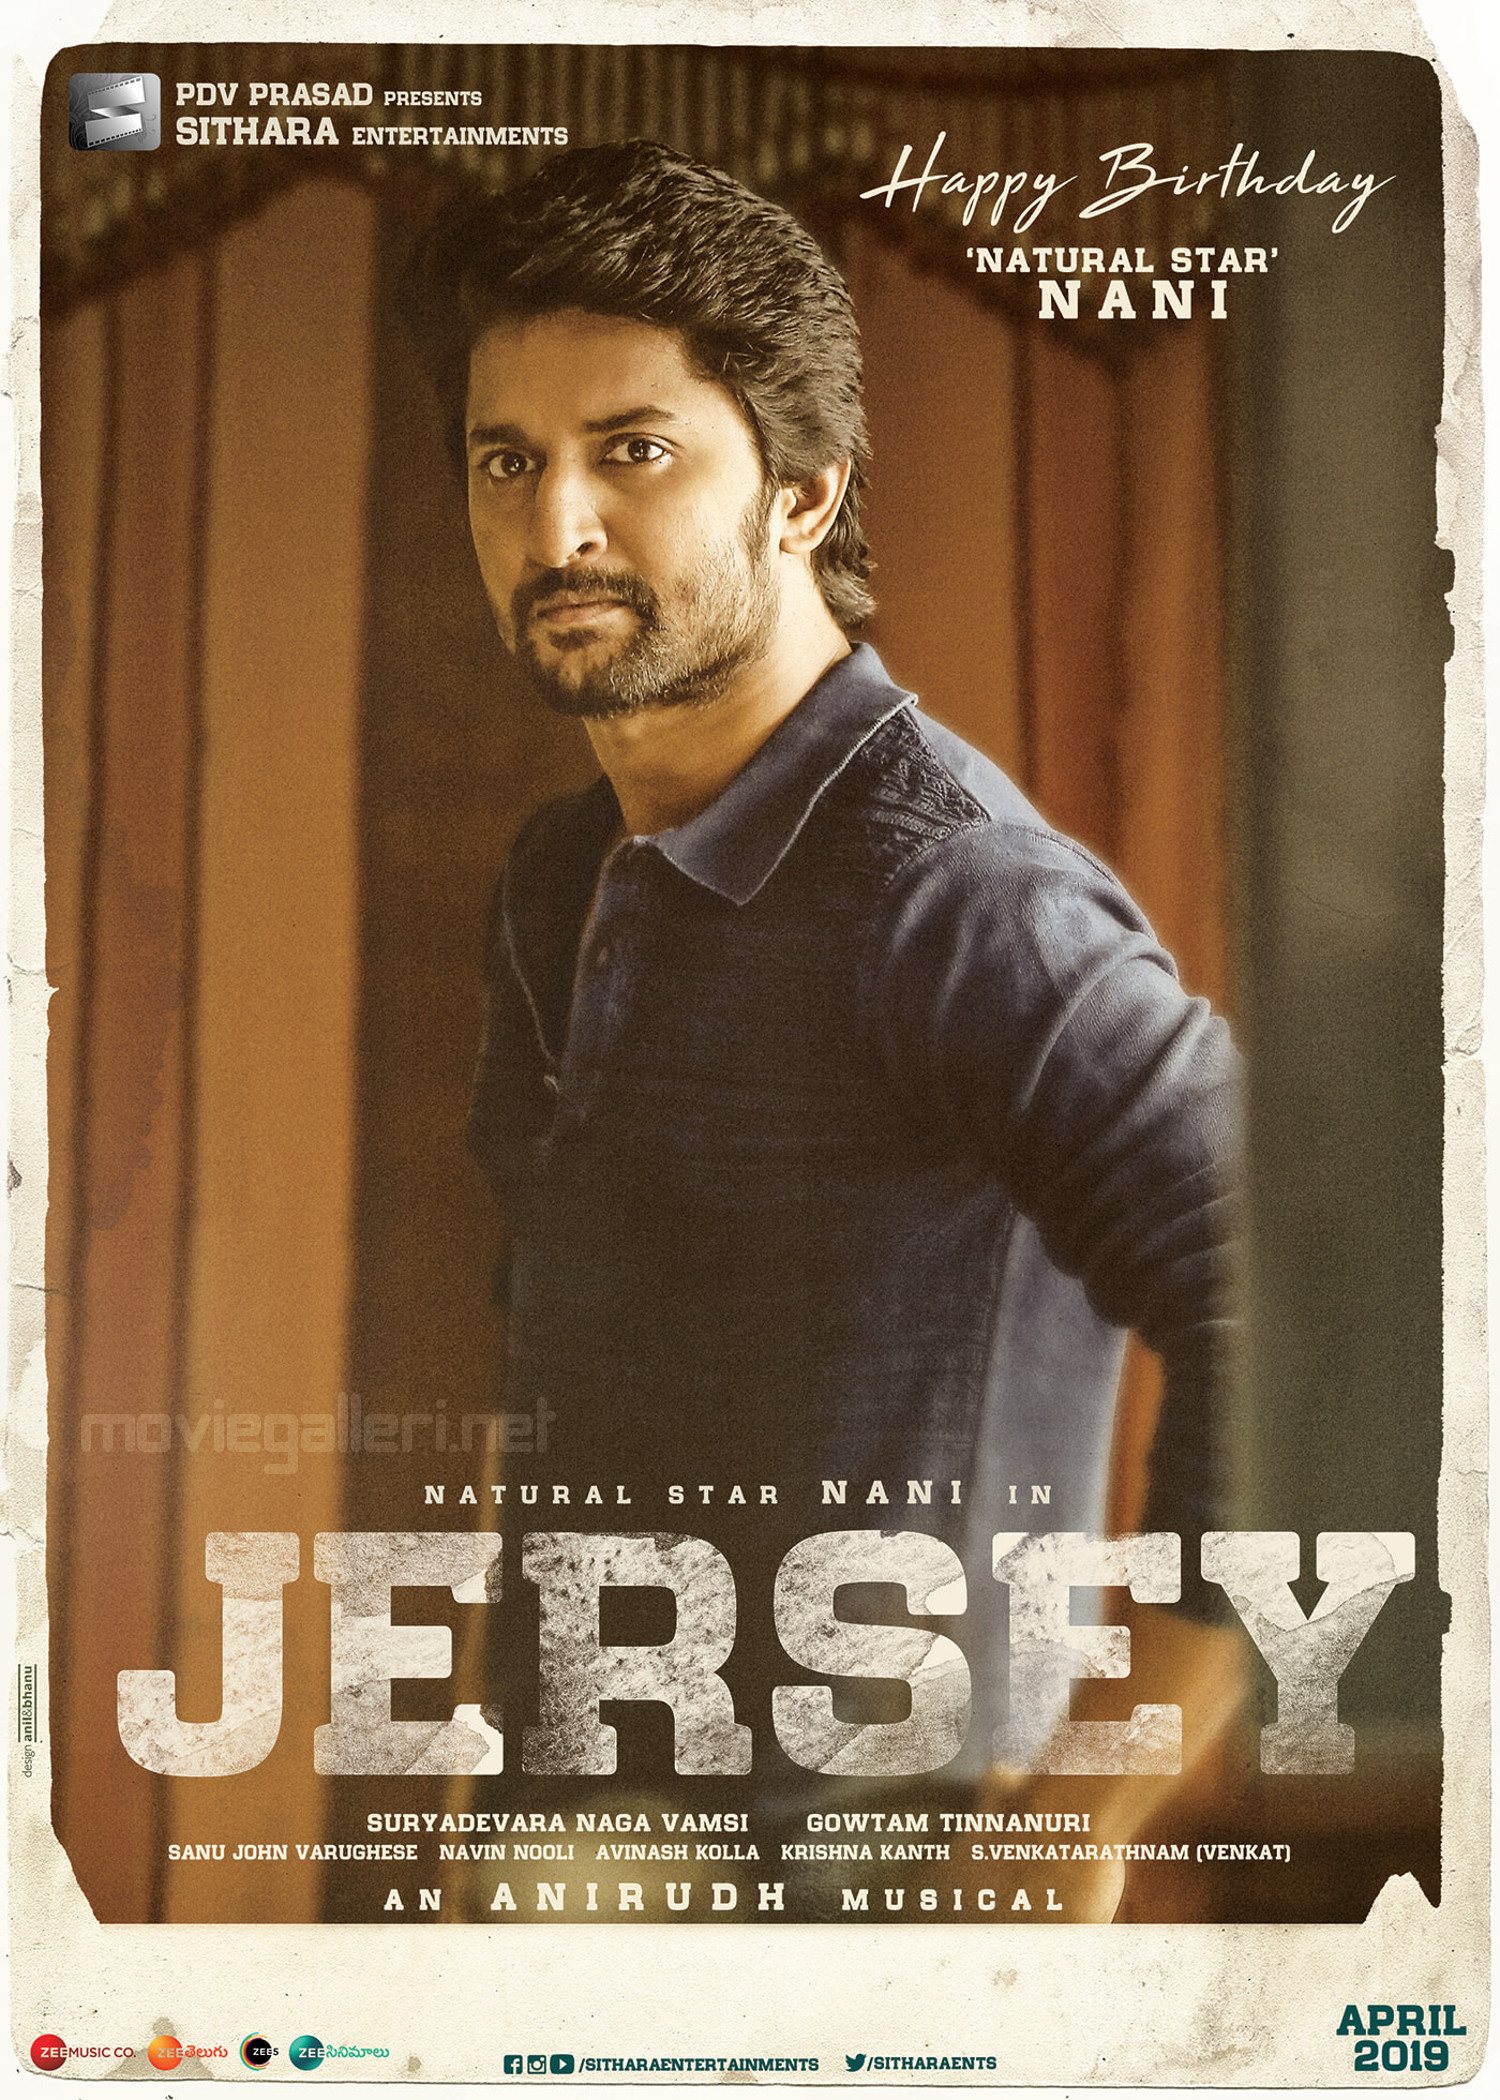 Jersey Movie Actor Nani Birthday Wishes Posters